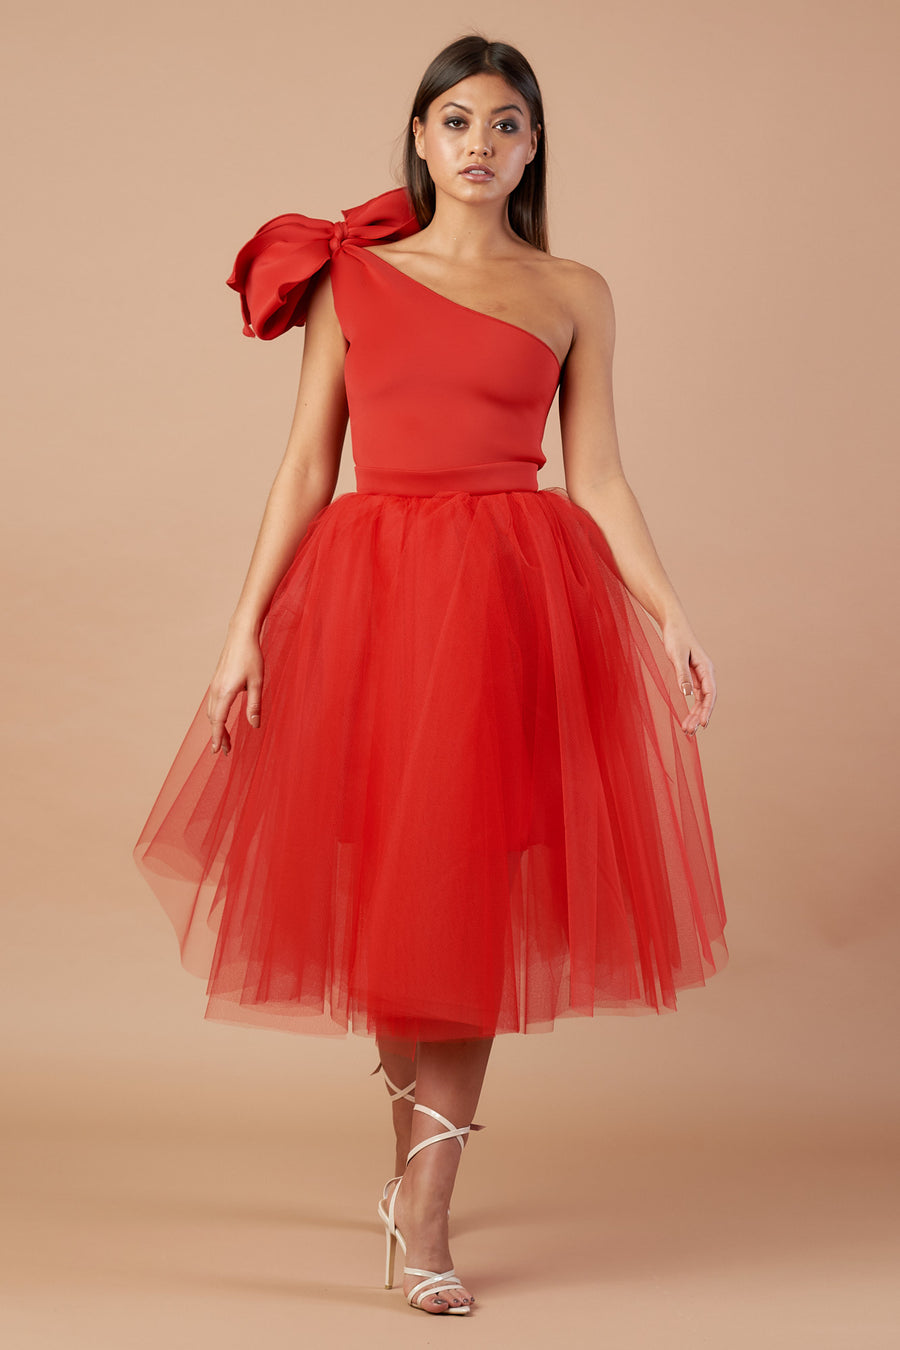 Red Bow Tulle Dress